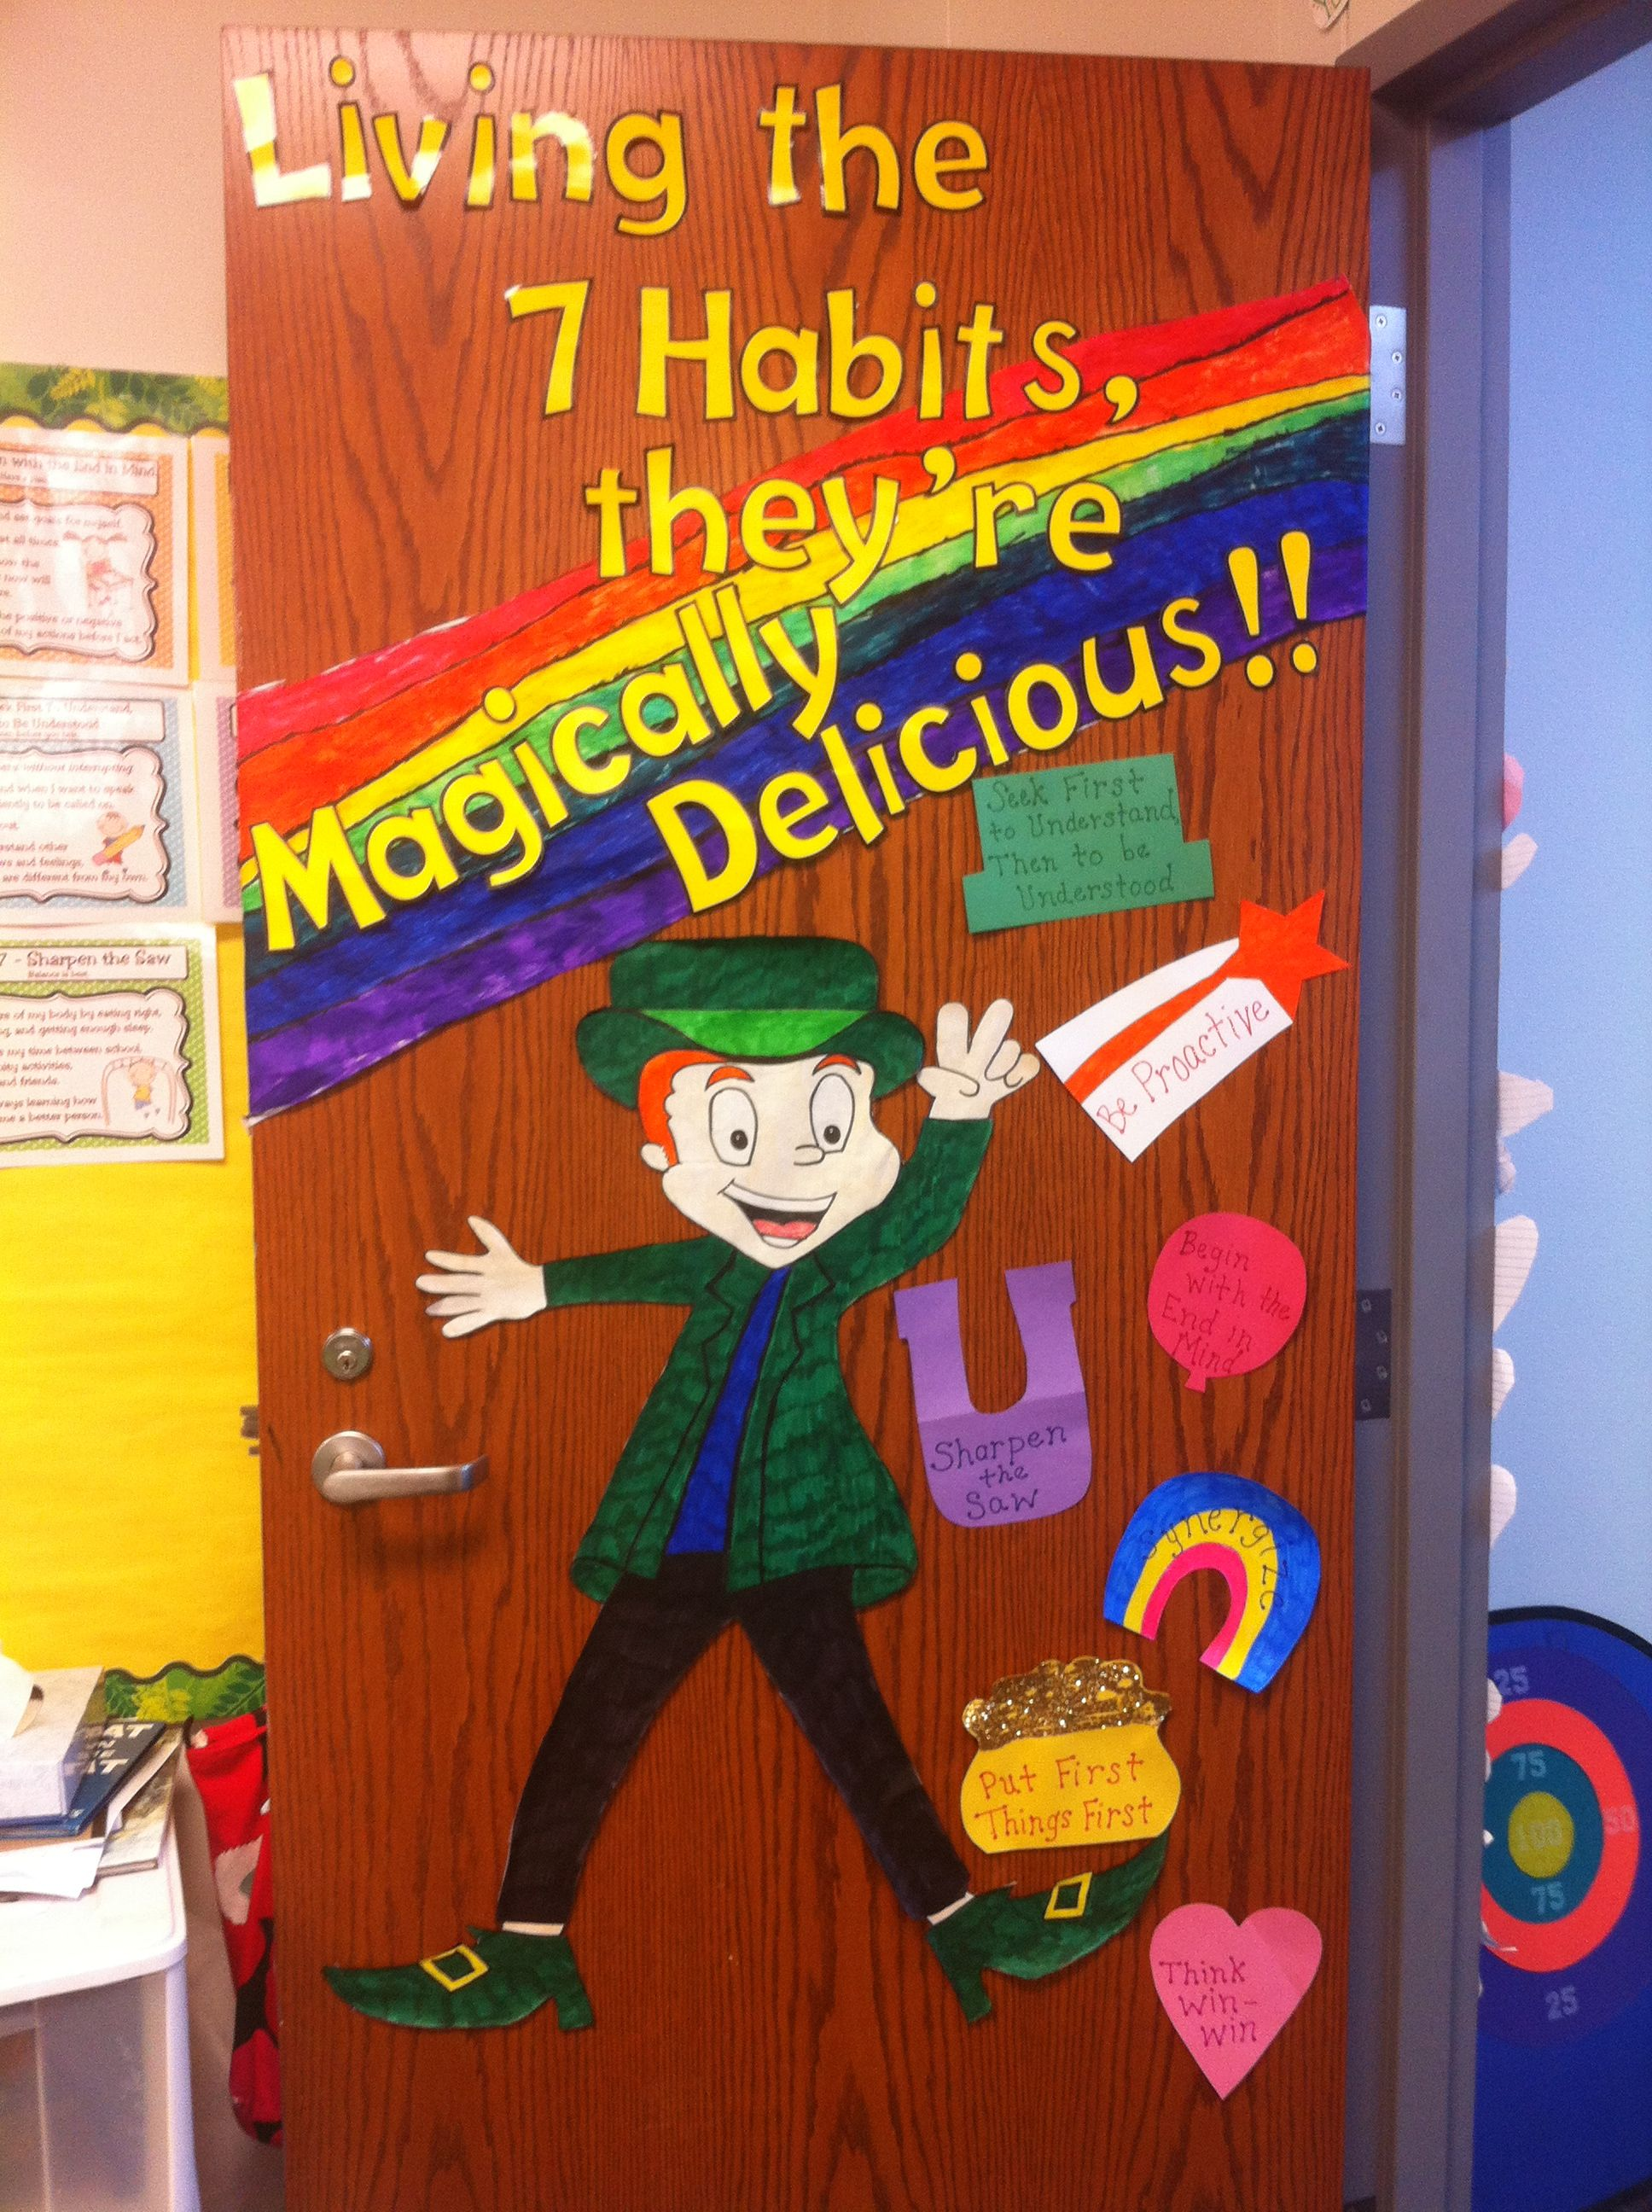 Keeping With The 7 Habits And Leader In Me Theme For St